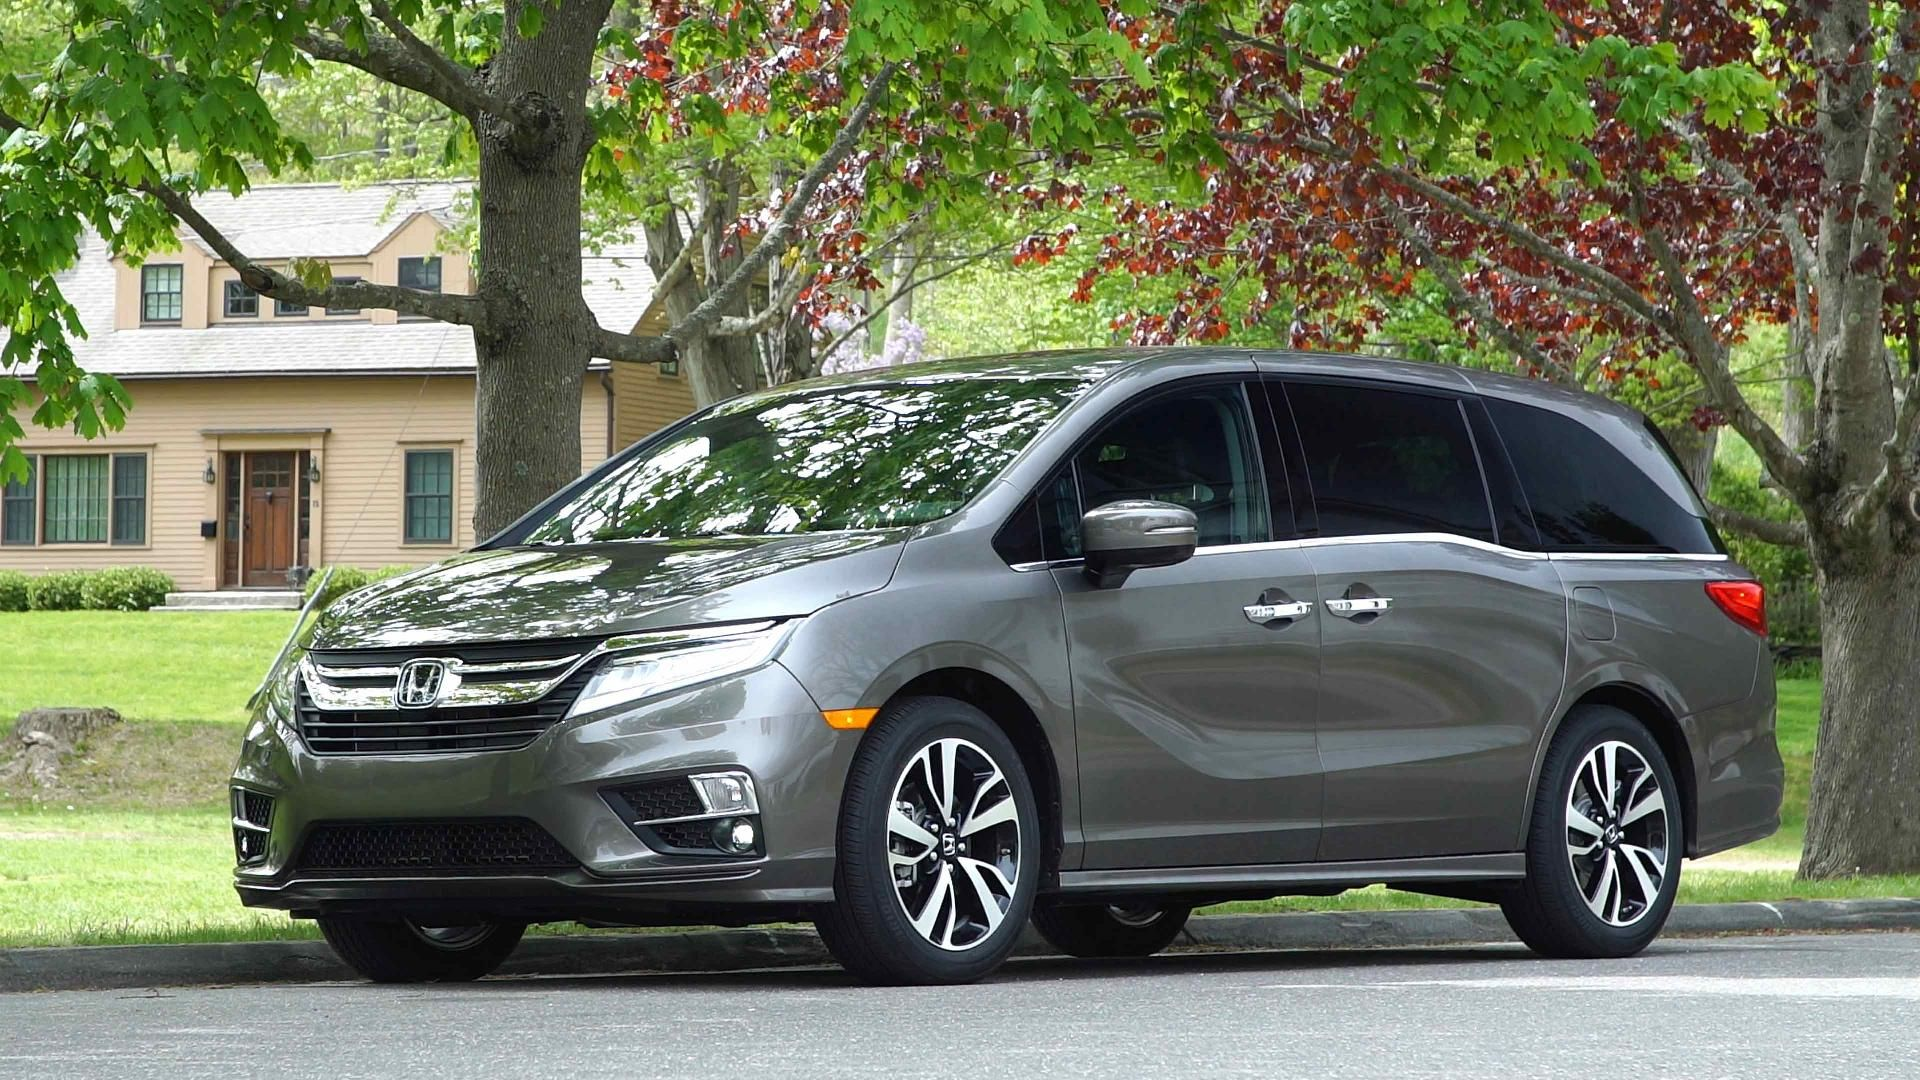 2018 Honda Odyssey Is Designed for Epic Road Trips